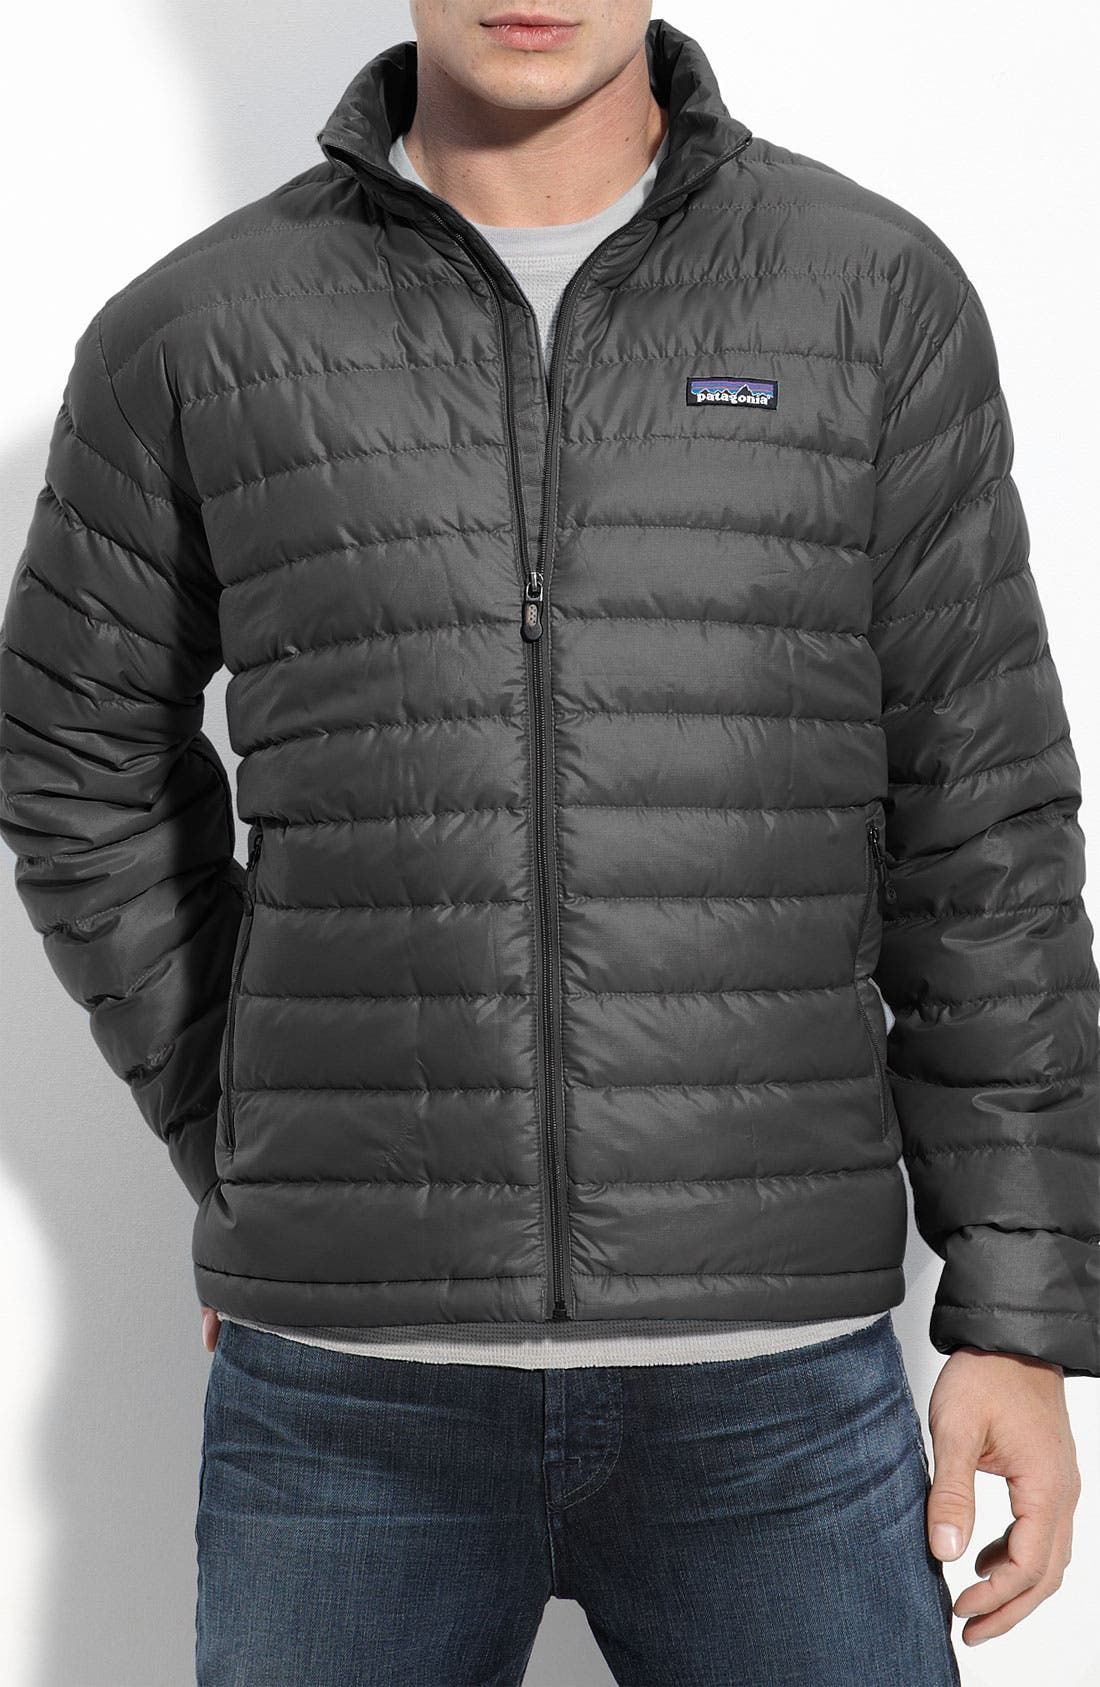 Alternate Image 1 Selected - Patagonia '800 Power Fill Down Sweater' Jacket